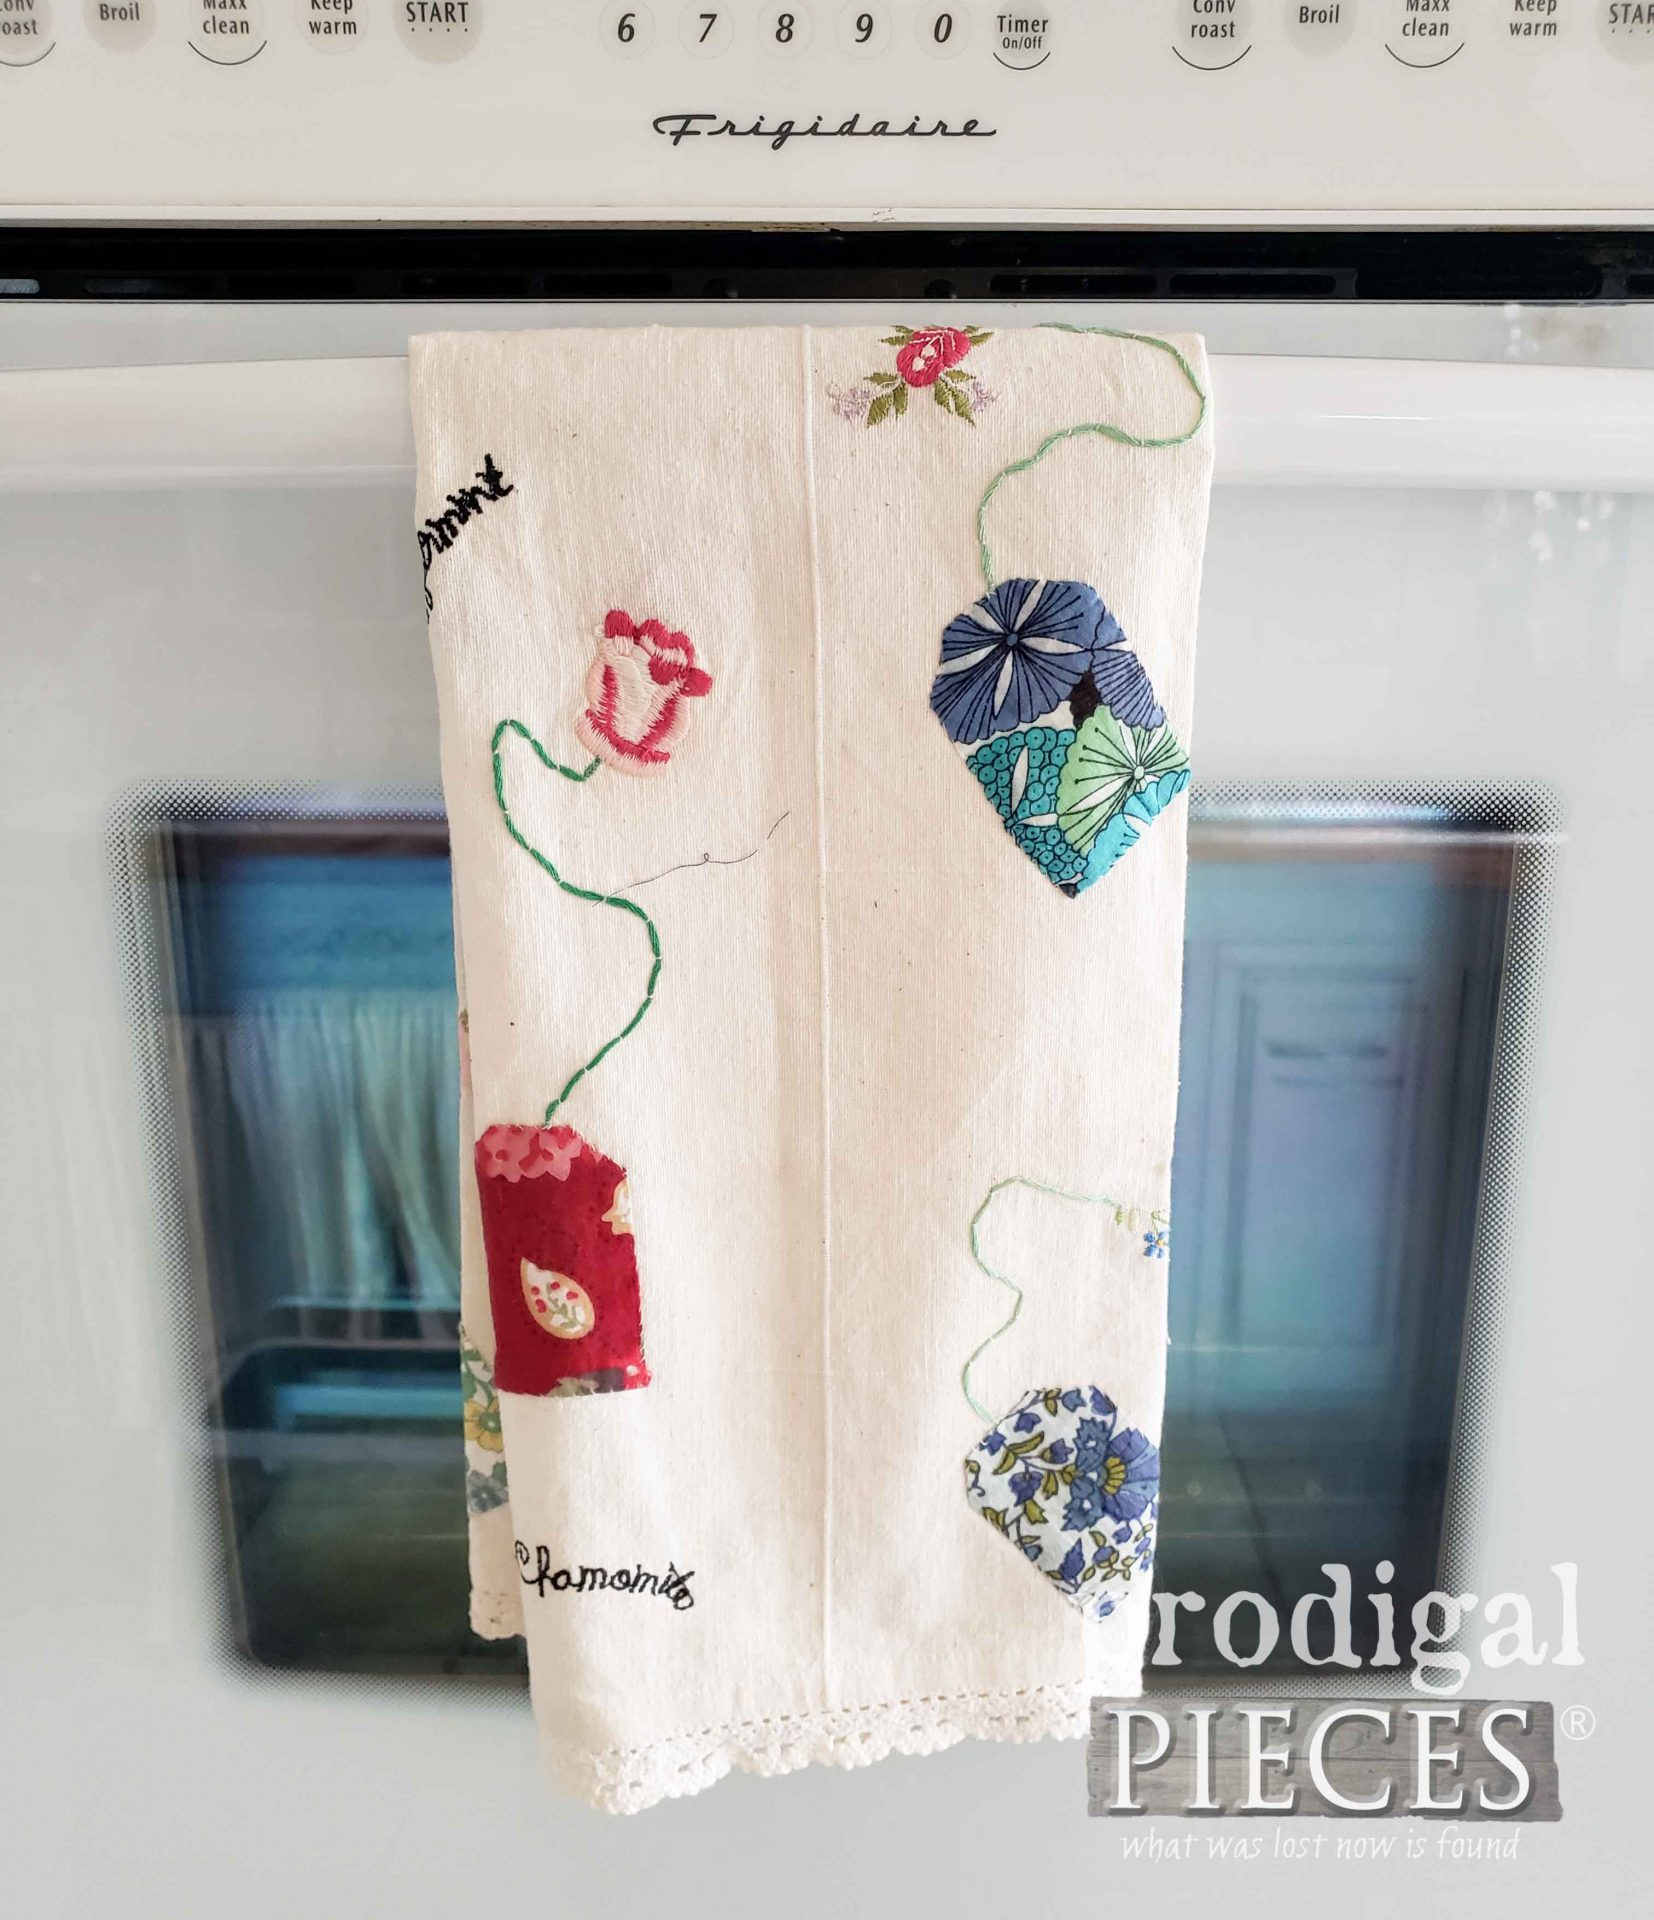 Embroidered Tea Towel Before Refashion by Larissa of Prodigal Pieces | prodigalpieces.com #prodigalpieces